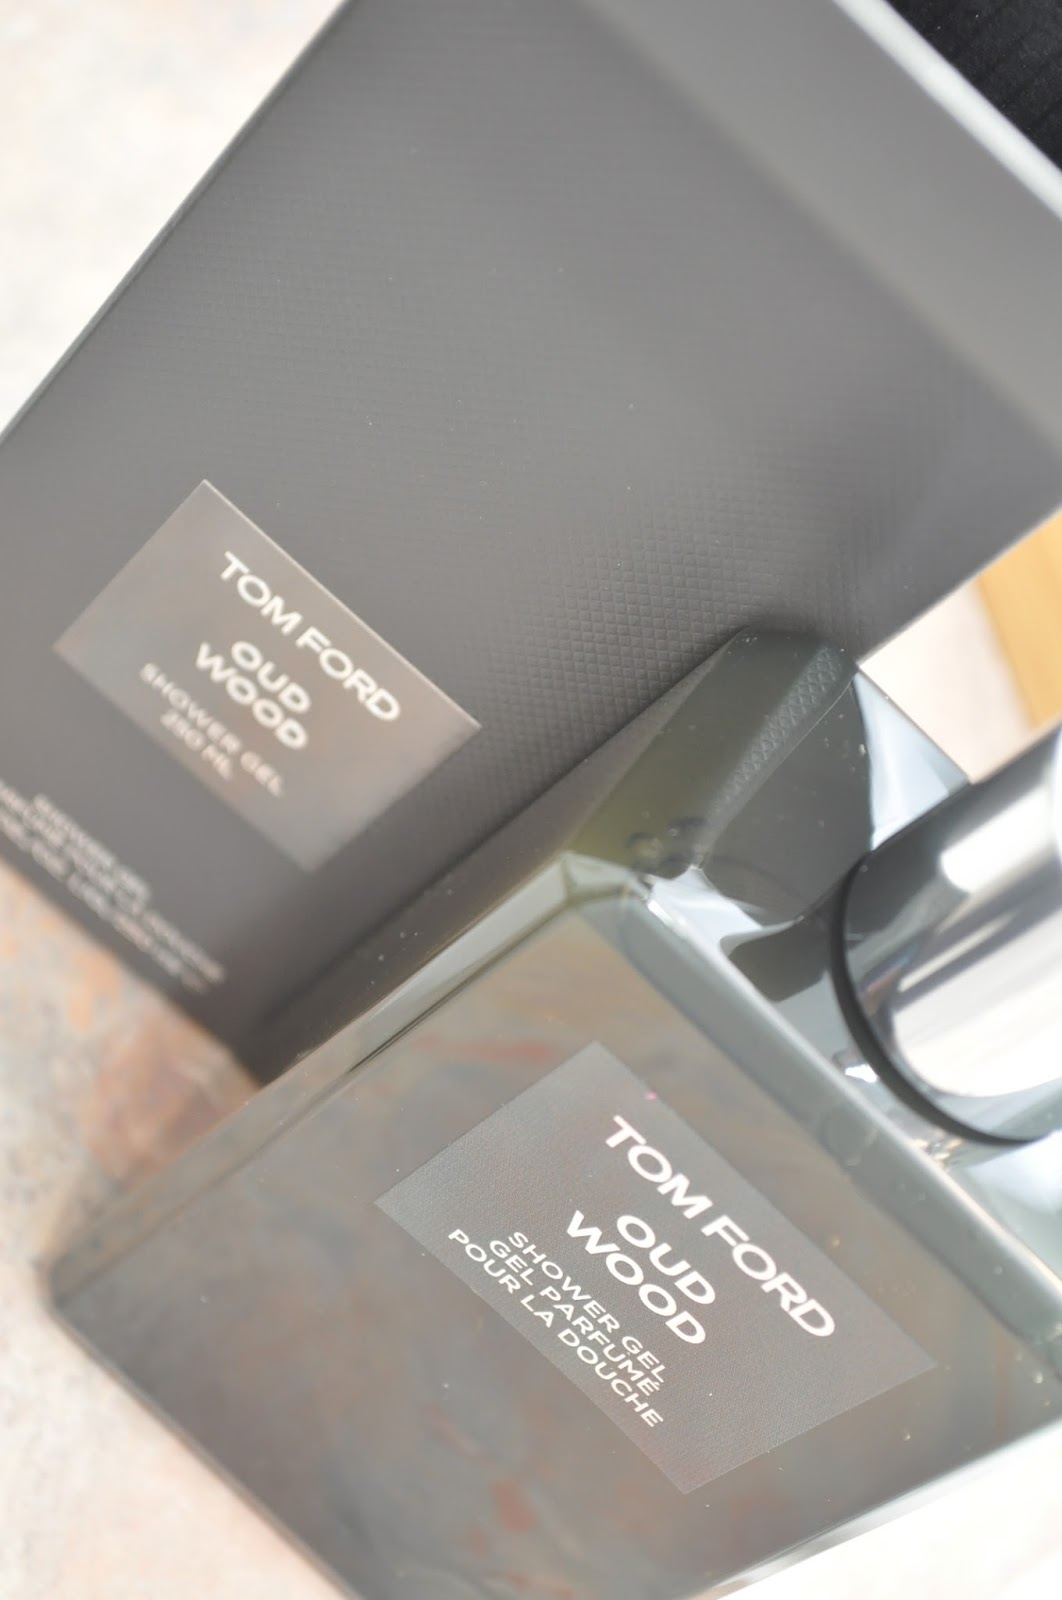 Naturally Beautiful ~ : Tom Ford Oud Wood Shower Gel Review